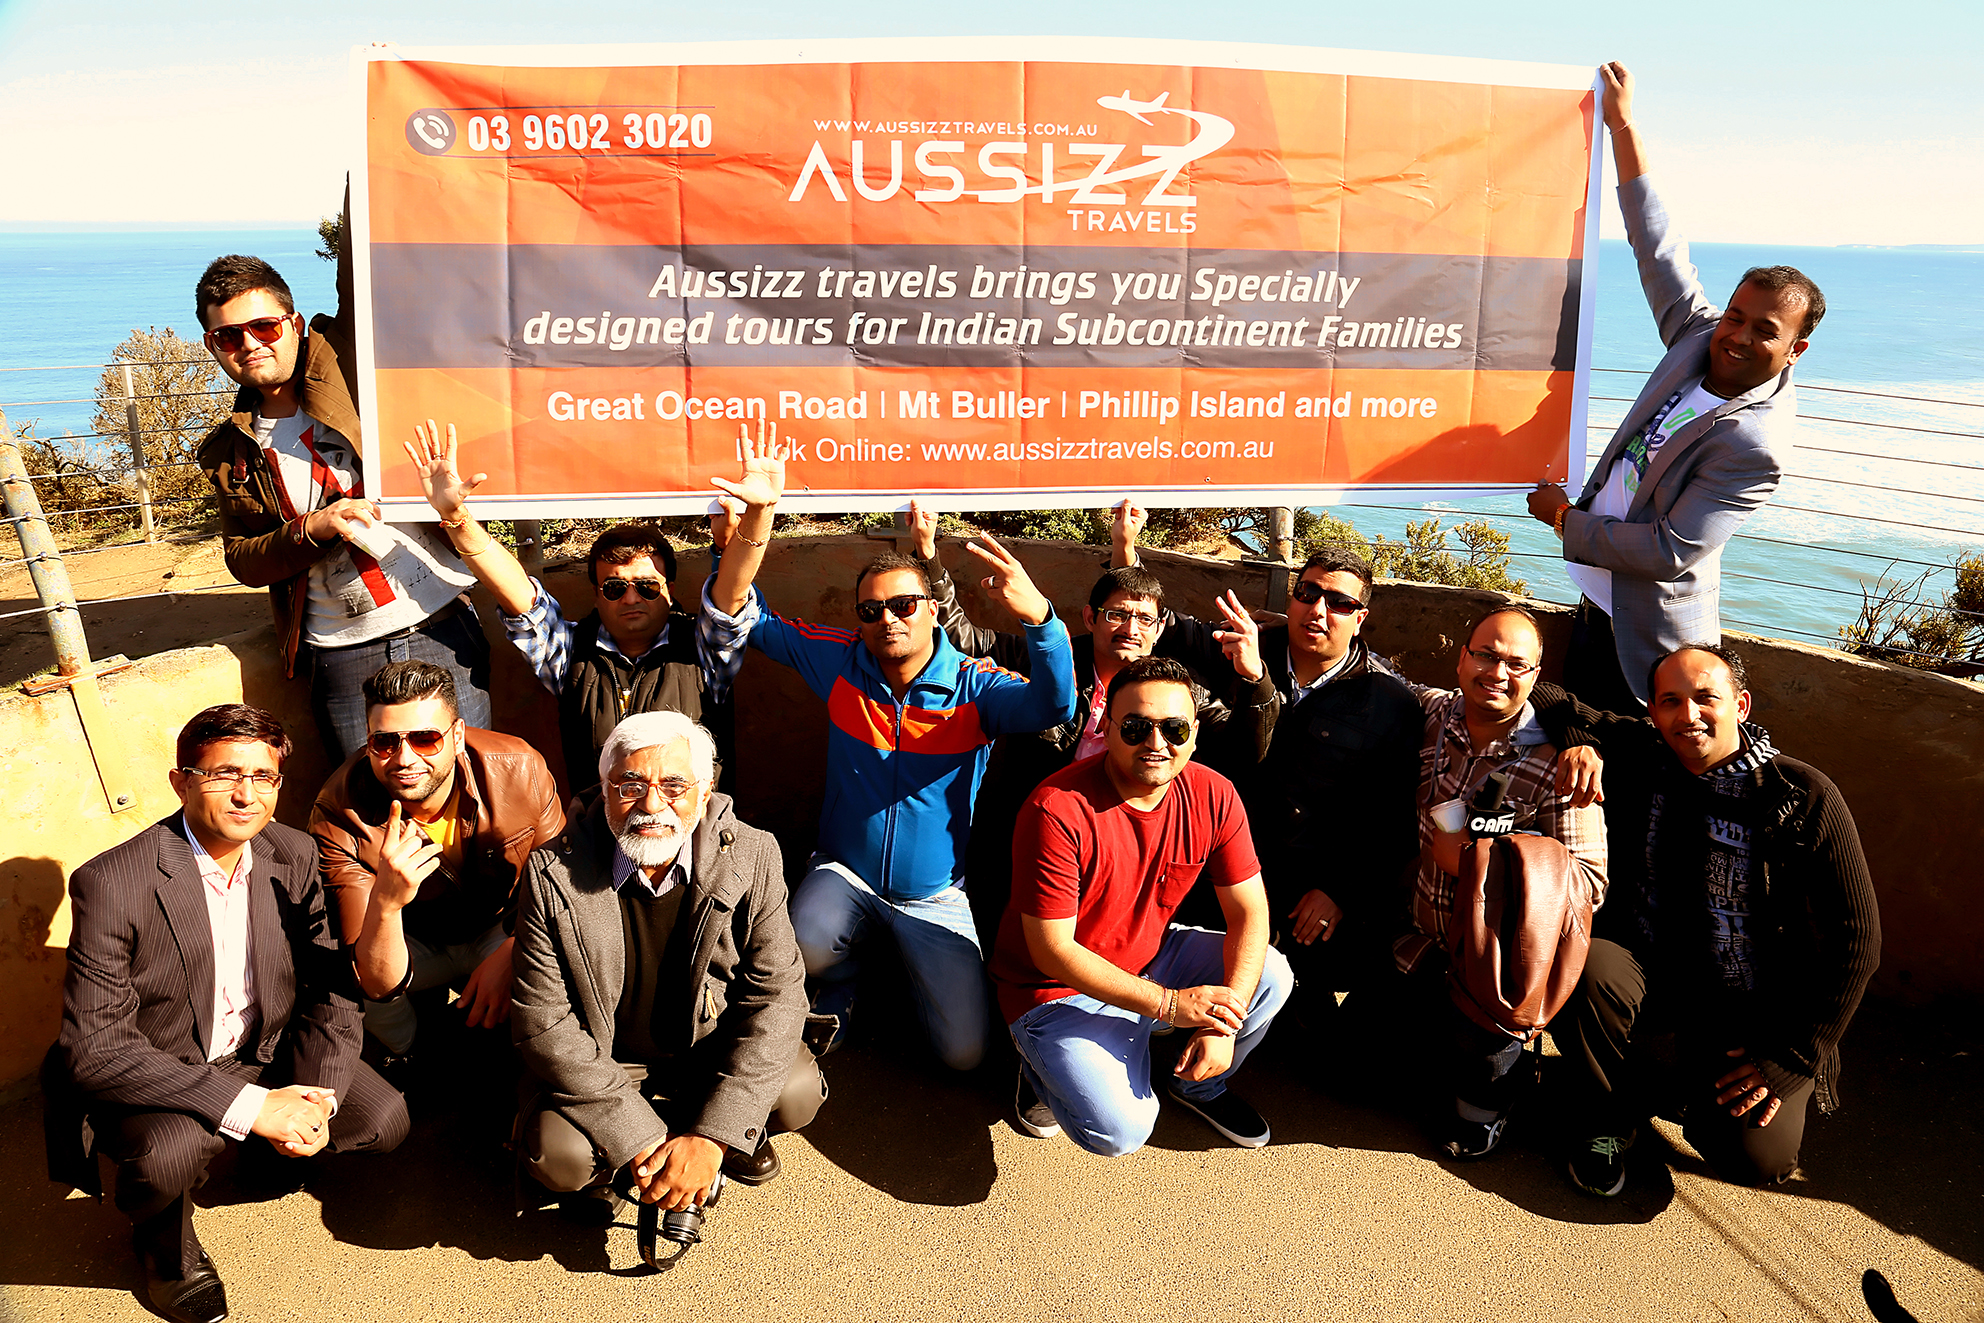 Aussizz travel launched their first travel & tour bus service to Great Ocean Road in Melbourne, Victoria